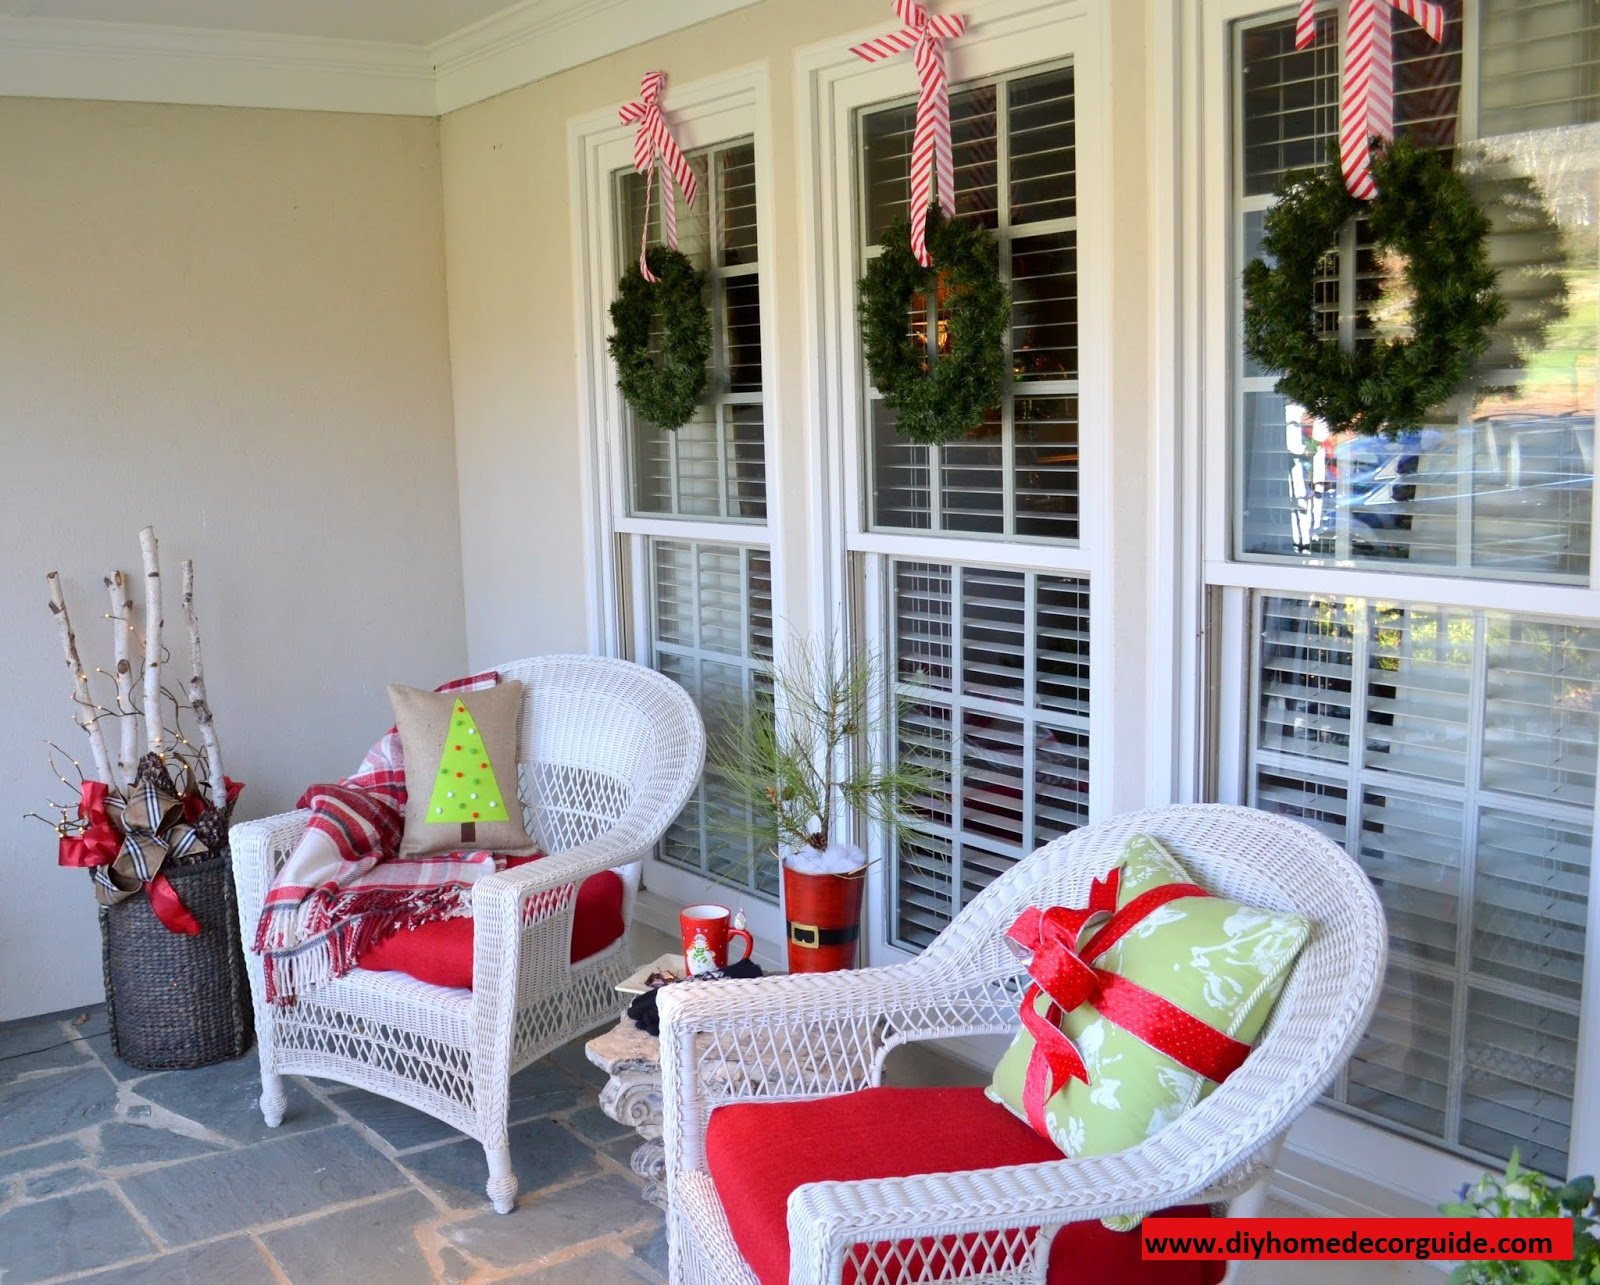 diy outdoor christmas decorations ideas homes alternative 23686 with measurements 1600 x 1285